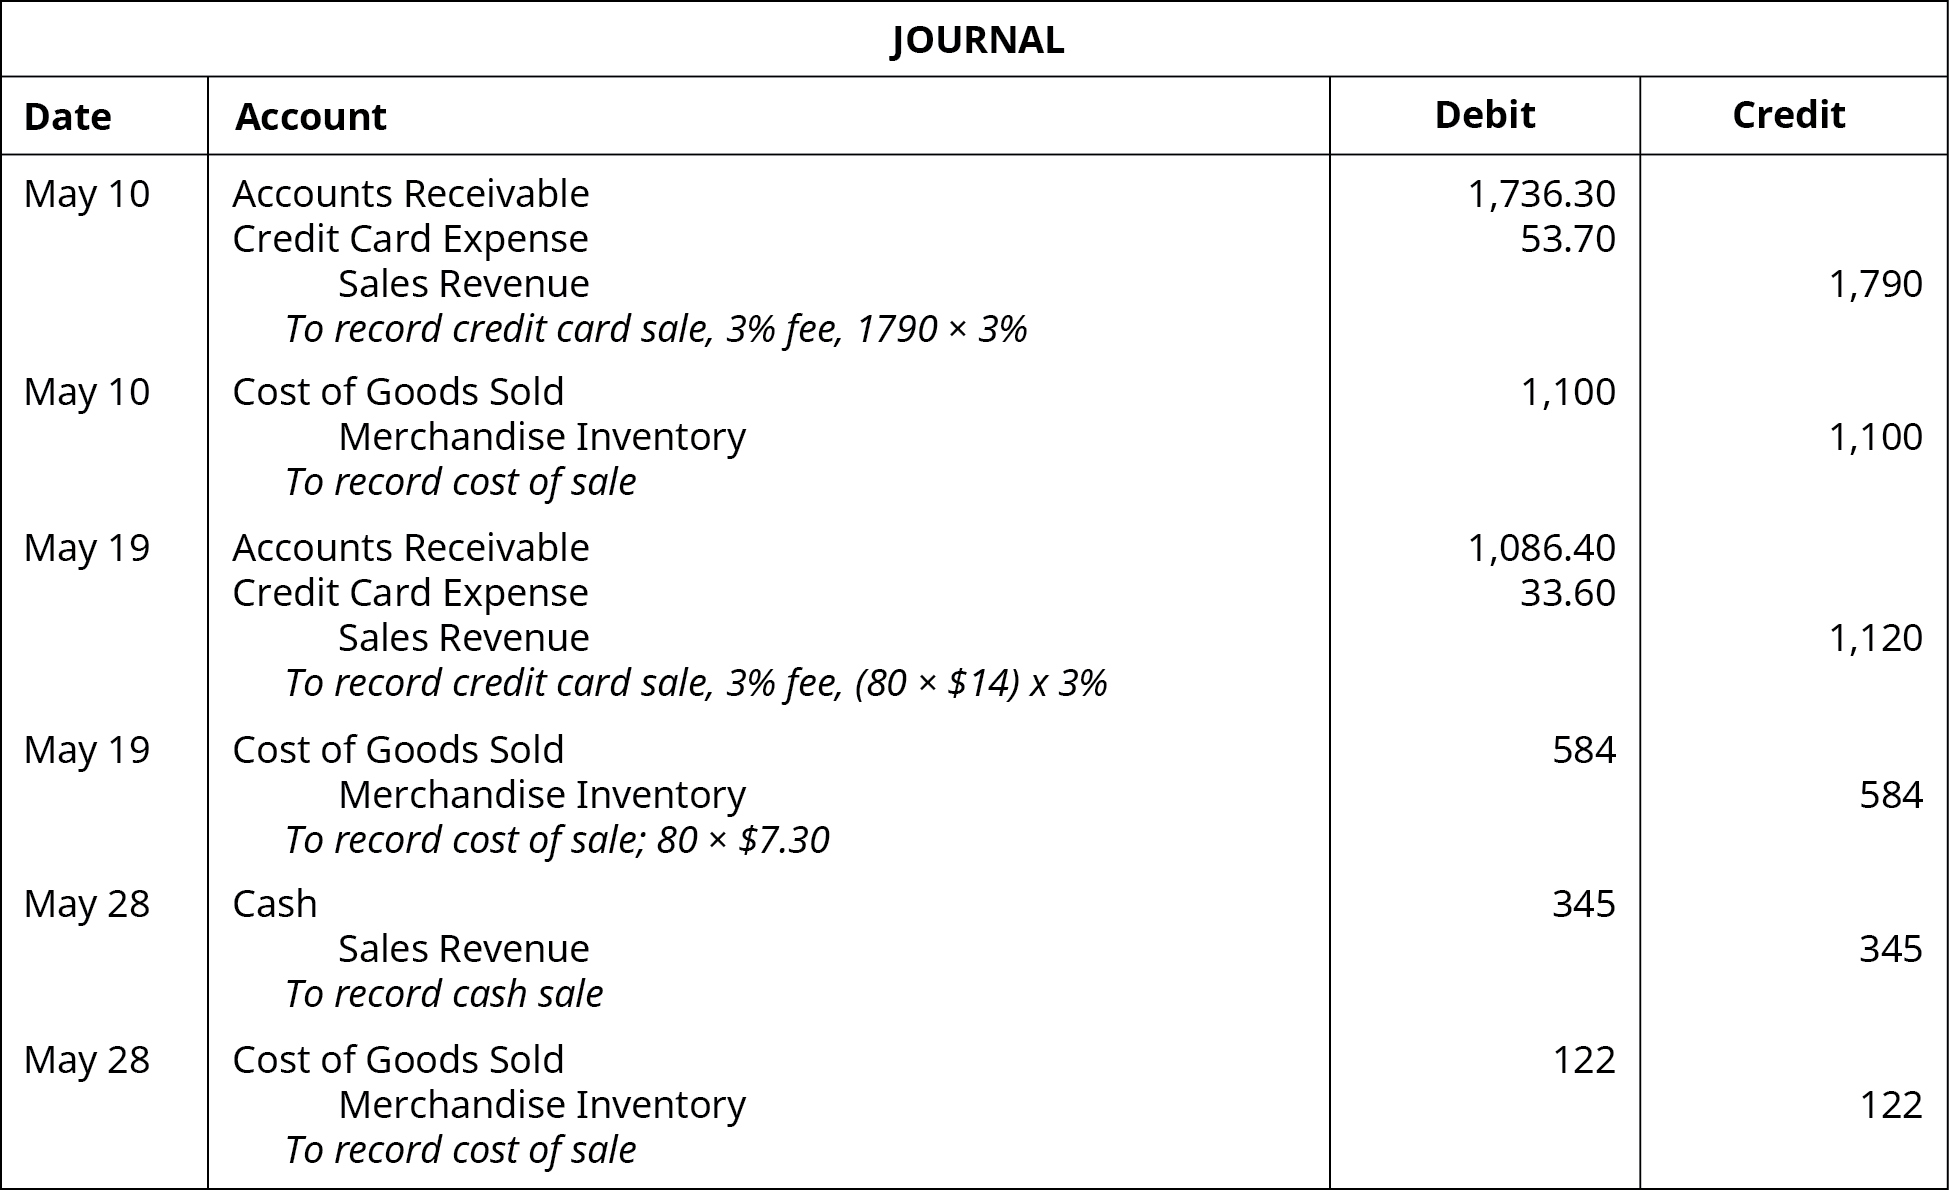 Journal entries: May 10: debit Accounts Receivable 1,736.30, debit Credit Card Expense 53.70, credit Sales Revenue 1790. Explanation: To record credit card sale, 3 percent fee. 1790 times 3 percent. May 10: debit COGS 1,100, credit Merchandise Inventory 1,100. Explanation: to record cost of sale. May 19: debit Accounts Receivable 1086.40, debit Credit Card Expense 33.60, credit Sales Revenue 1,120. Explanation: To record credit card sale, 3 percent fee, (80 times $14) times 3 percent. May 19: debit COGS 584, credit Merchandise Inventory 584. Explanation: to record cost of sale; 80 times $7.30. May 28: debit Cash 345, credit Sales Revenue 345. Explanation: To record cash sale. May 28: debit COGS 122, credit Merchandise Inventory 122. Explanation: To record cost of sale.